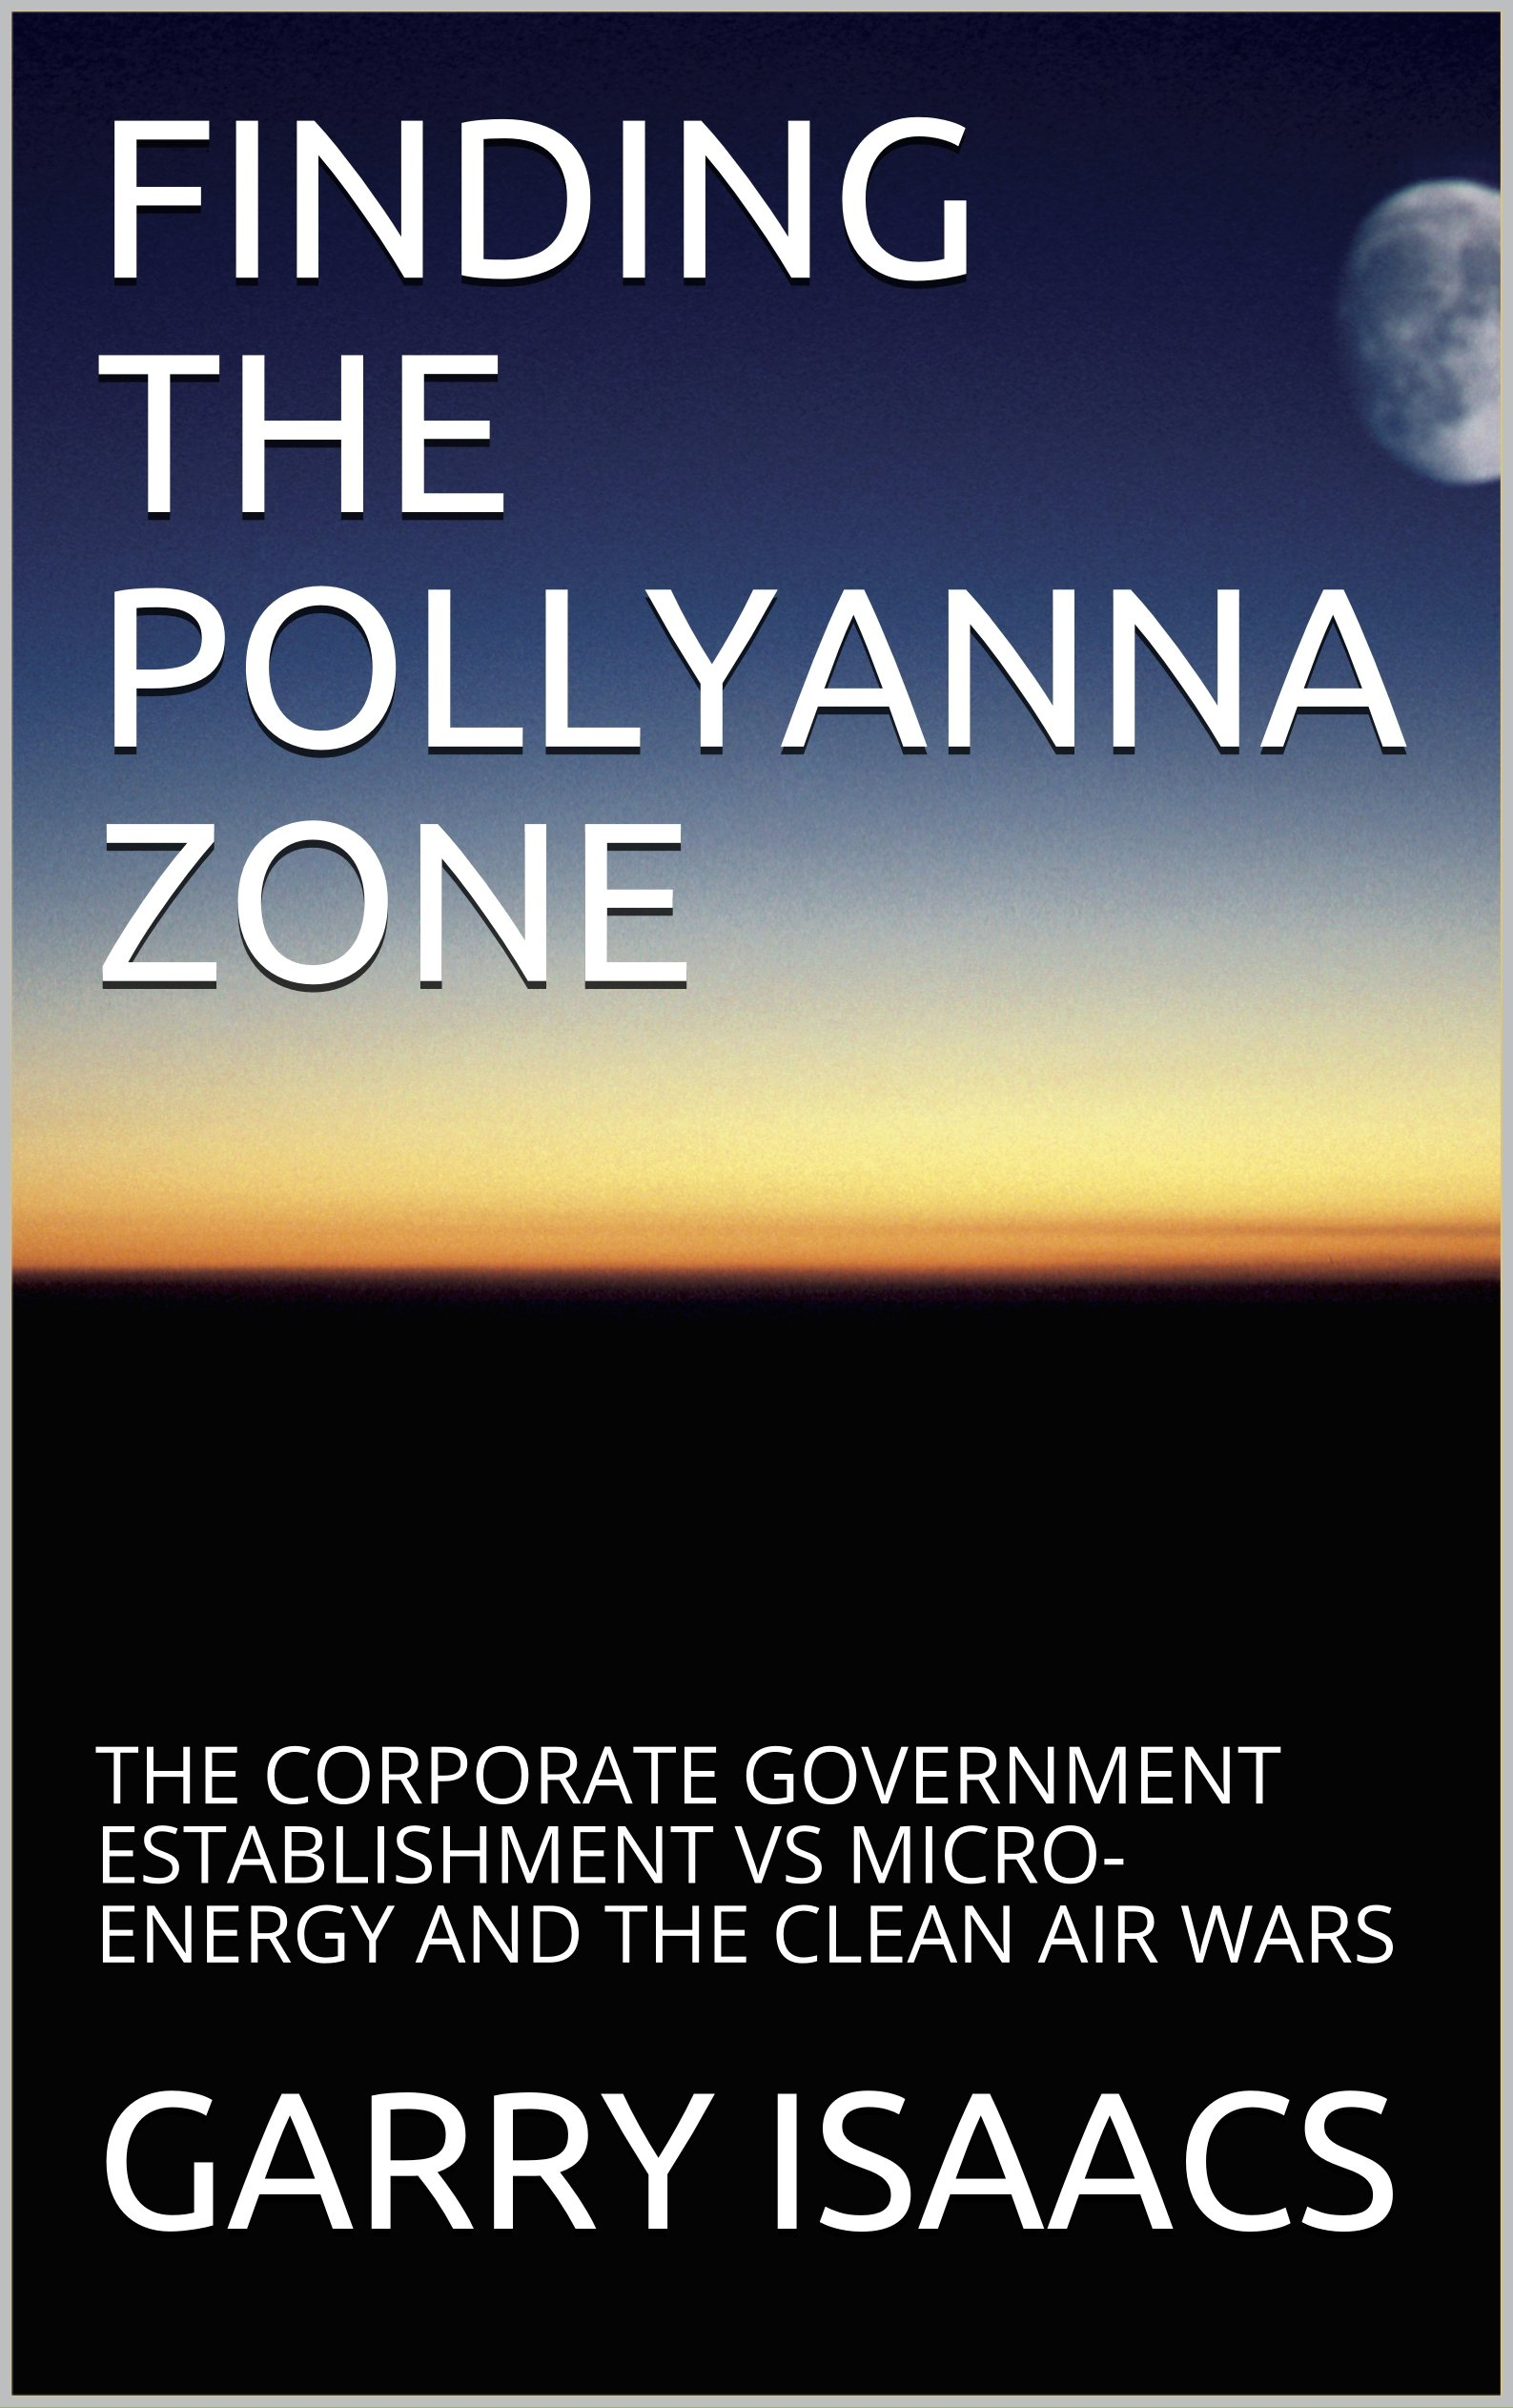 FINDING THE POLLYANNA ZONE: THE CORPORATE GOVERNMENT ESTABLISHMENT VS MICRO-ENERGY AND THE CLEAN AIR WARS